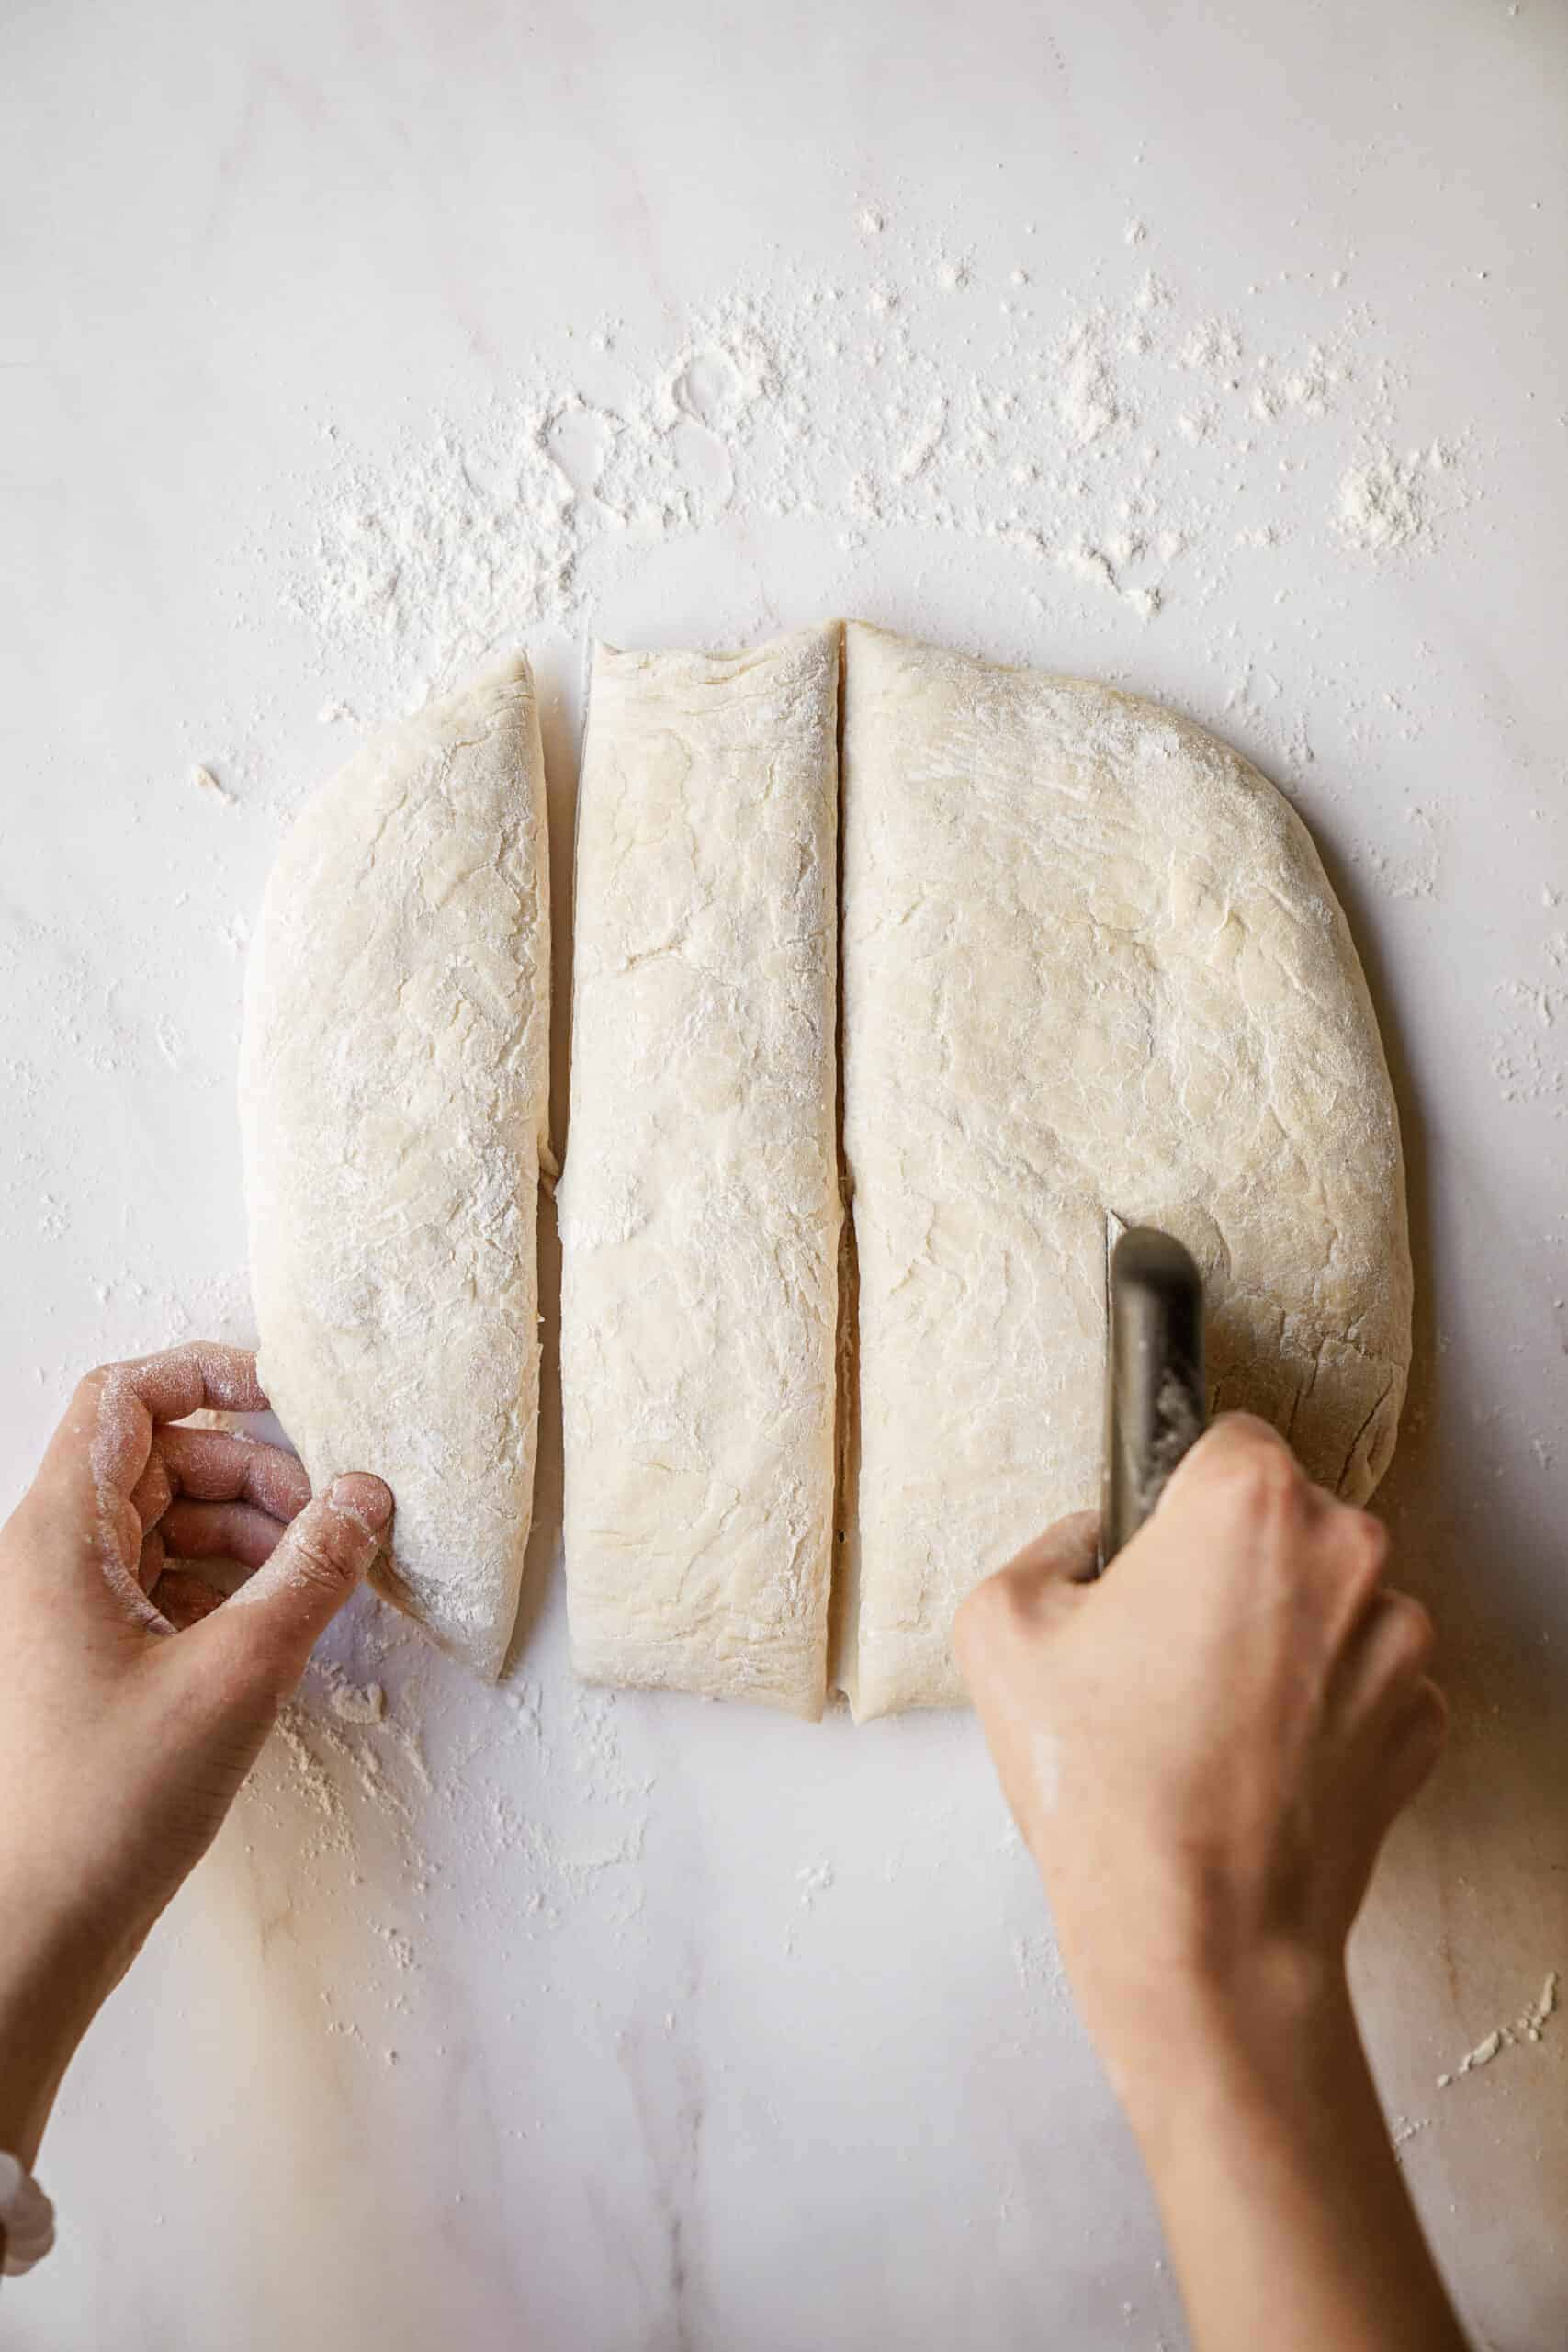 Dough being cut into squares